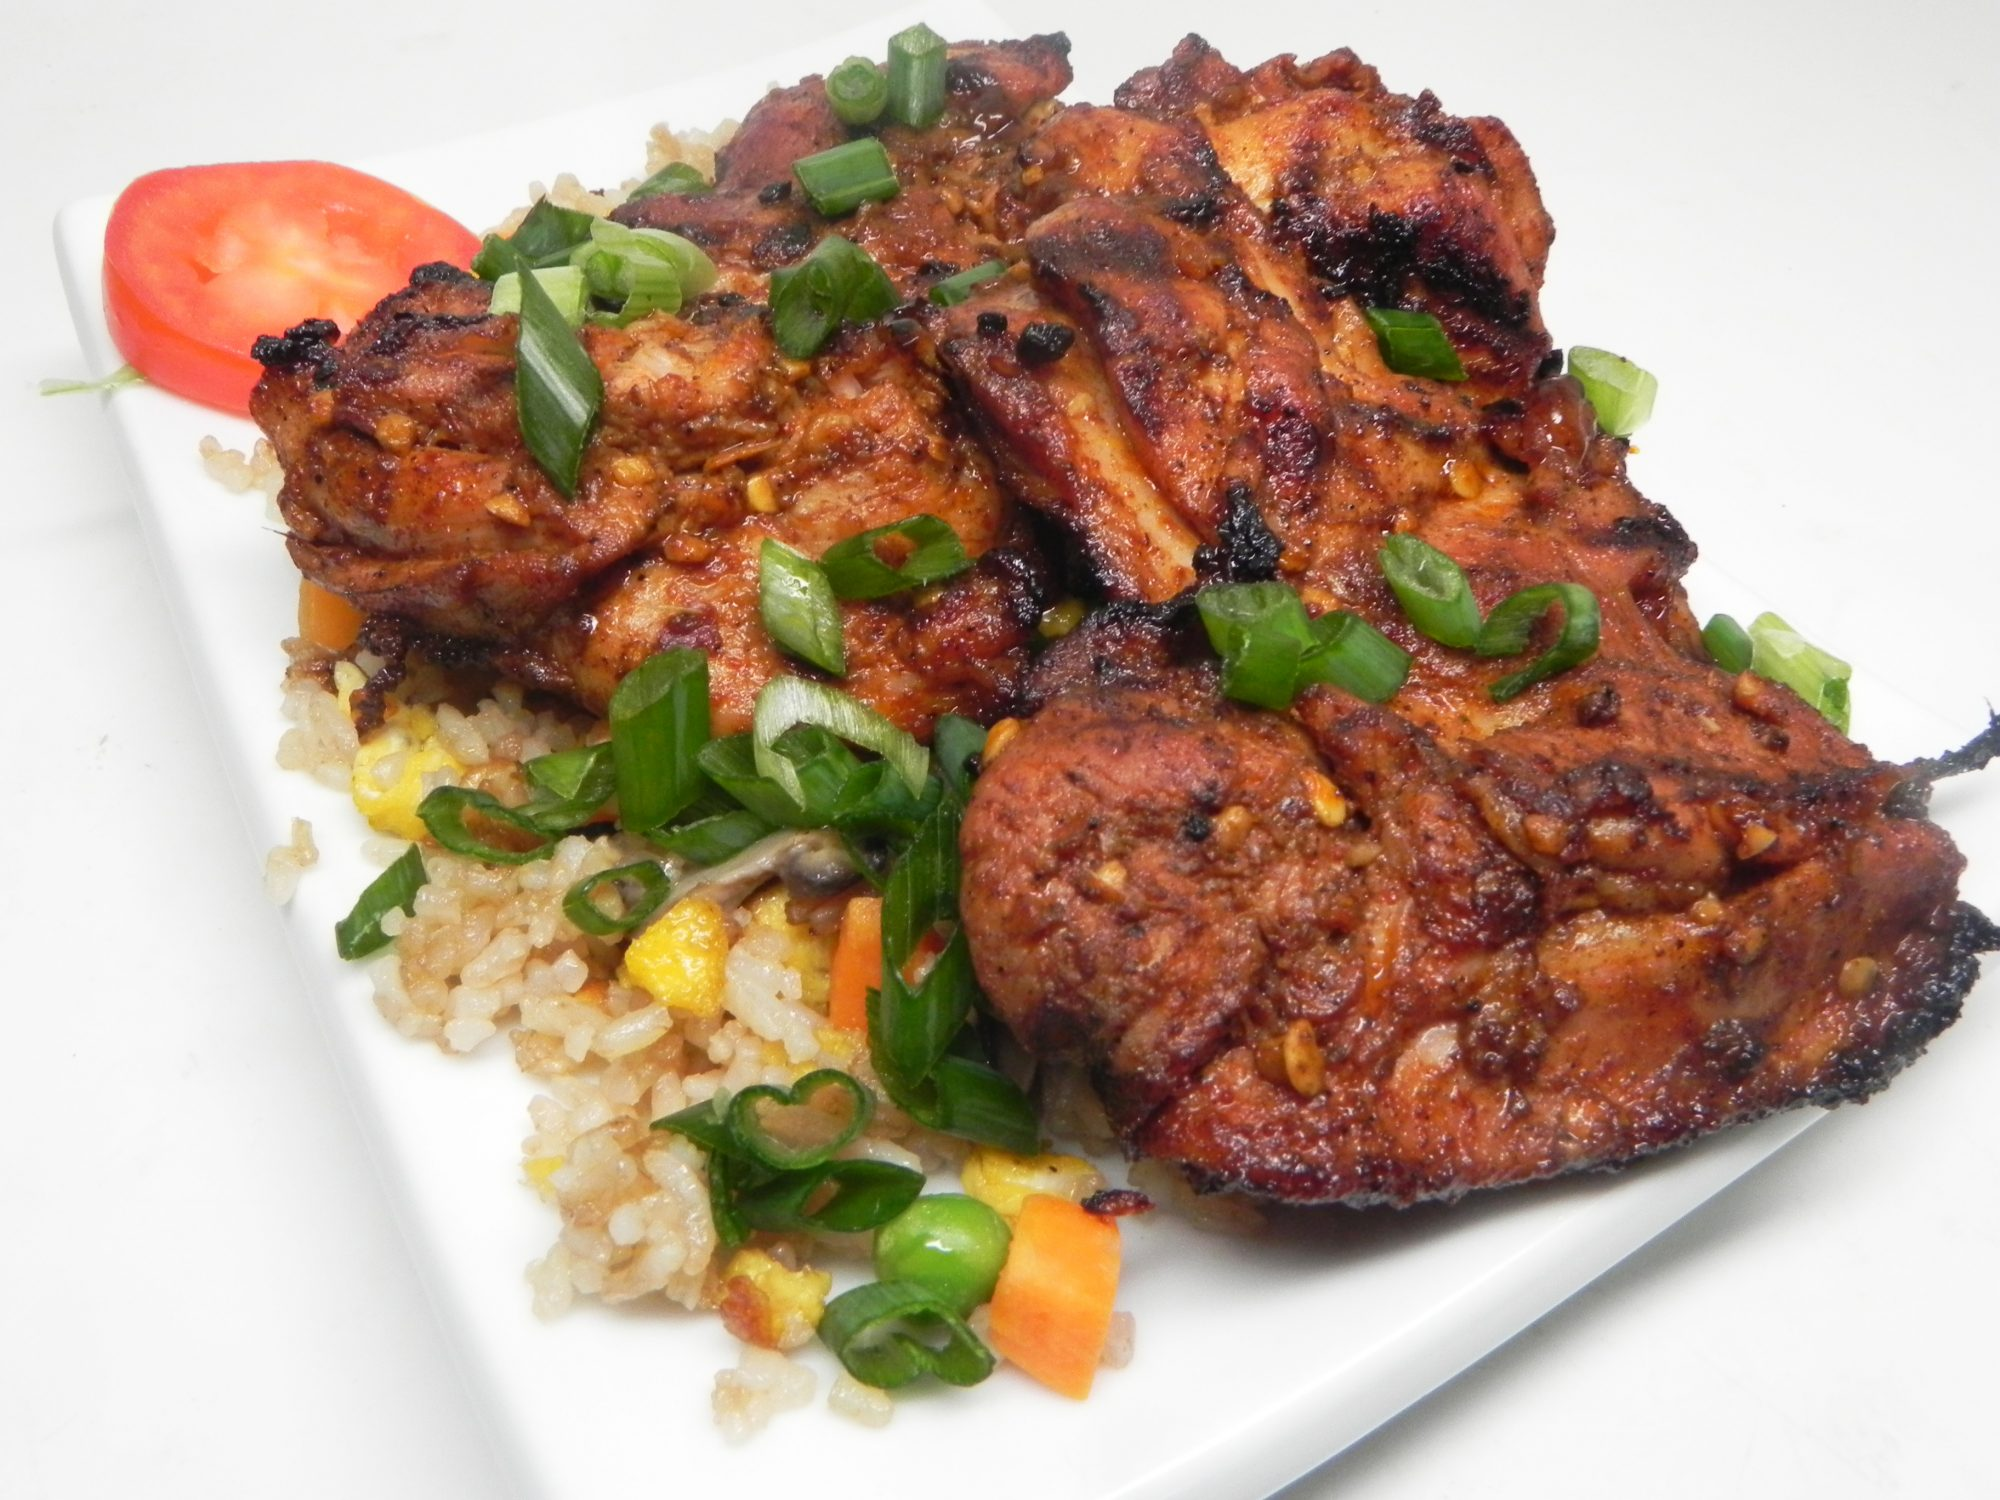 korean grilled chicken thighs over rice with green onions and vegetables